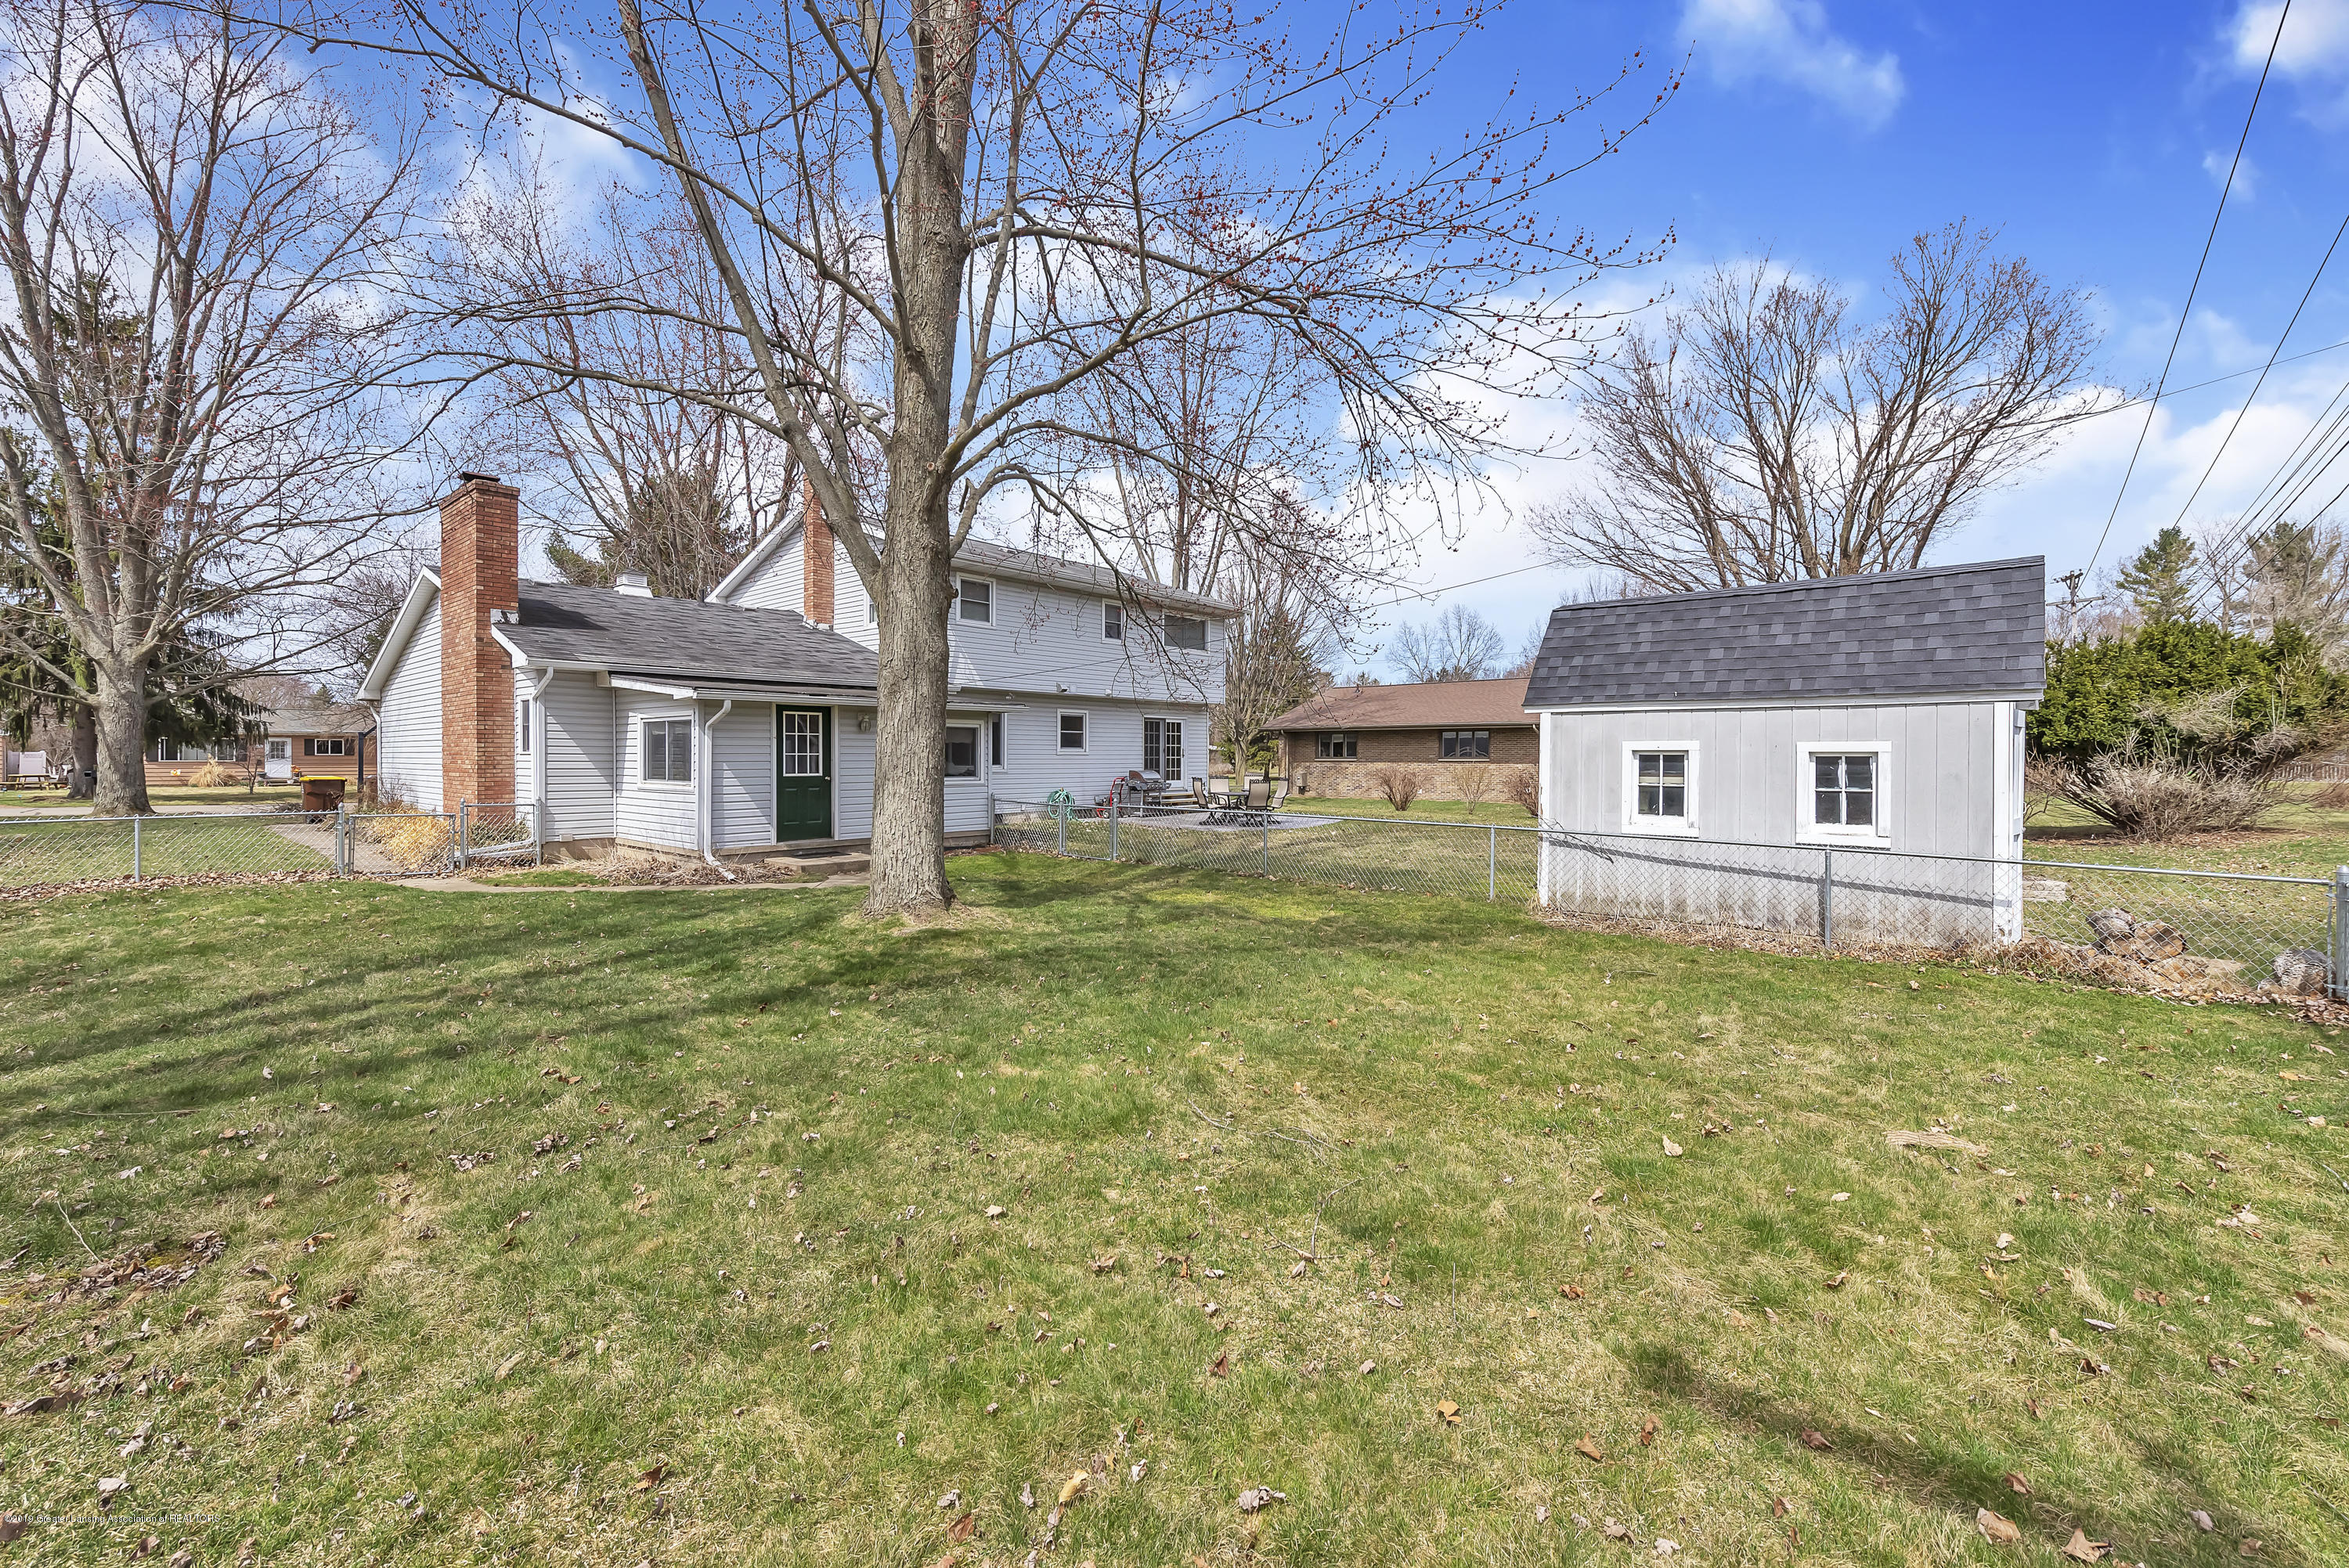 601 Raeburn Rd - 601-Raeburn-Road-Eaton-Rapids-Michigan-w - 41